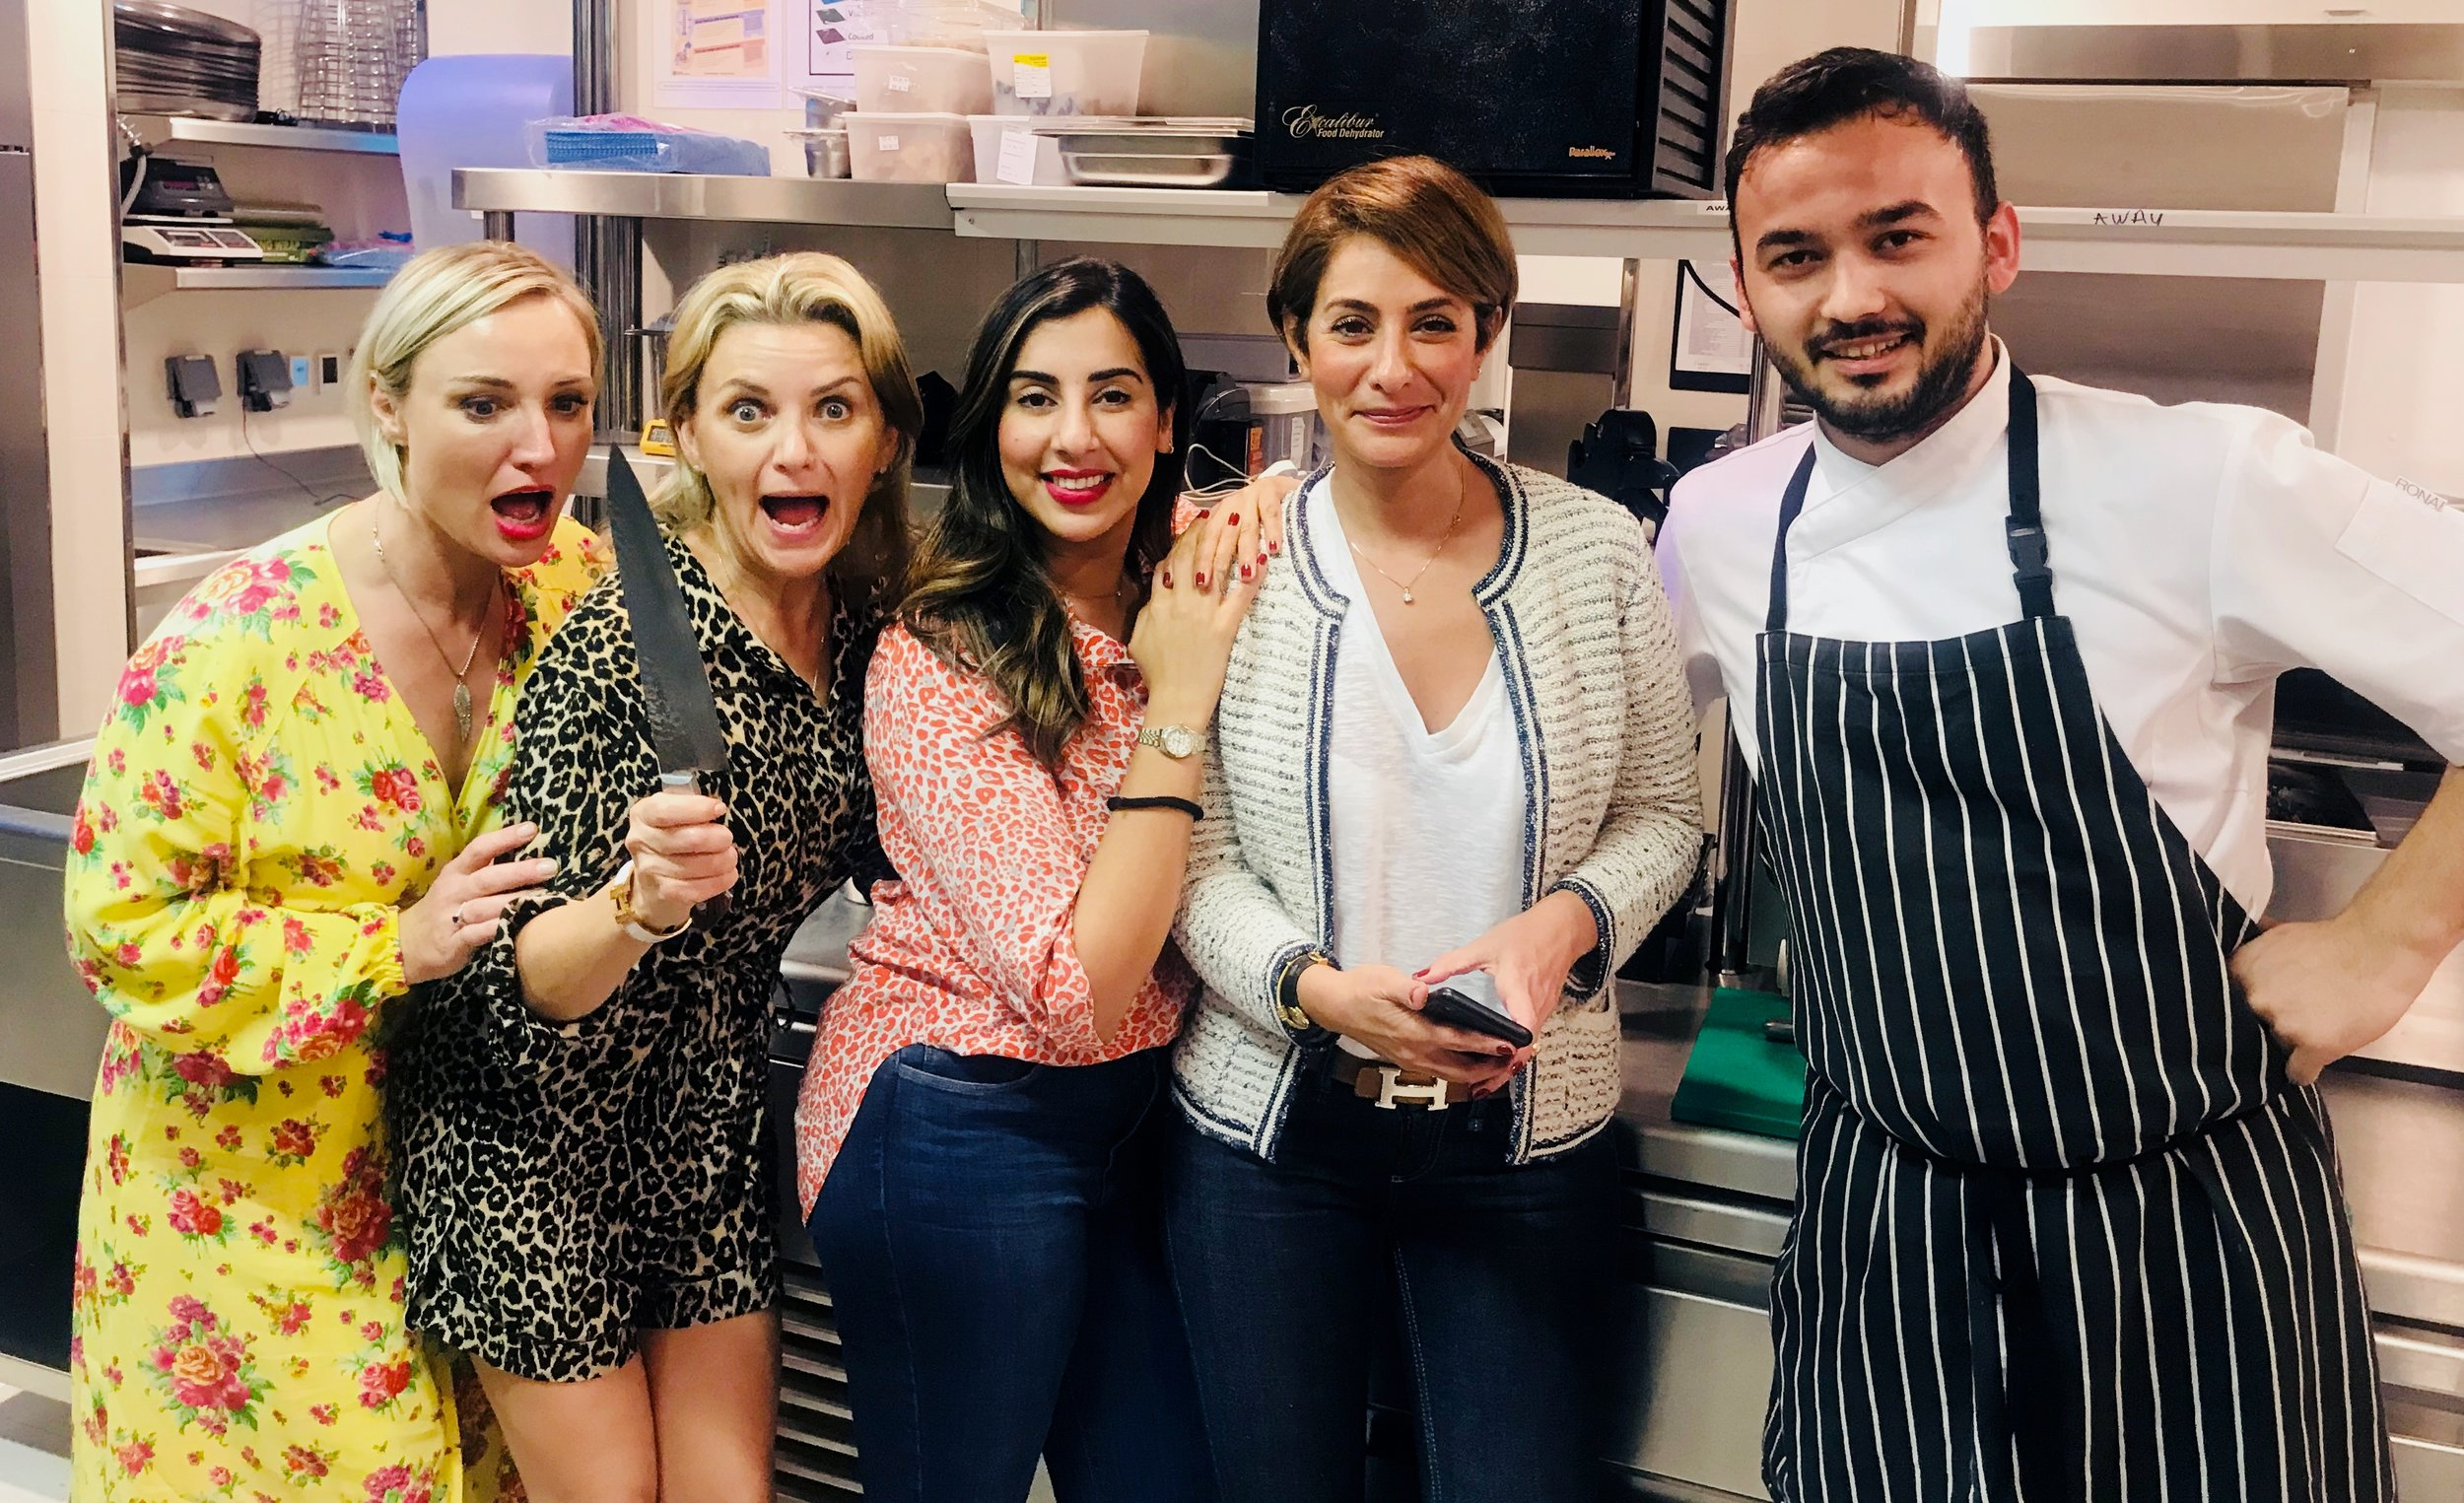 #rebelleboss ladies (Anna Royall-Smith, Mary Pratt, Suman Jalaf, Sherrie Asgari) up to no good and trying to rope in Chef Gokhan Cokelez